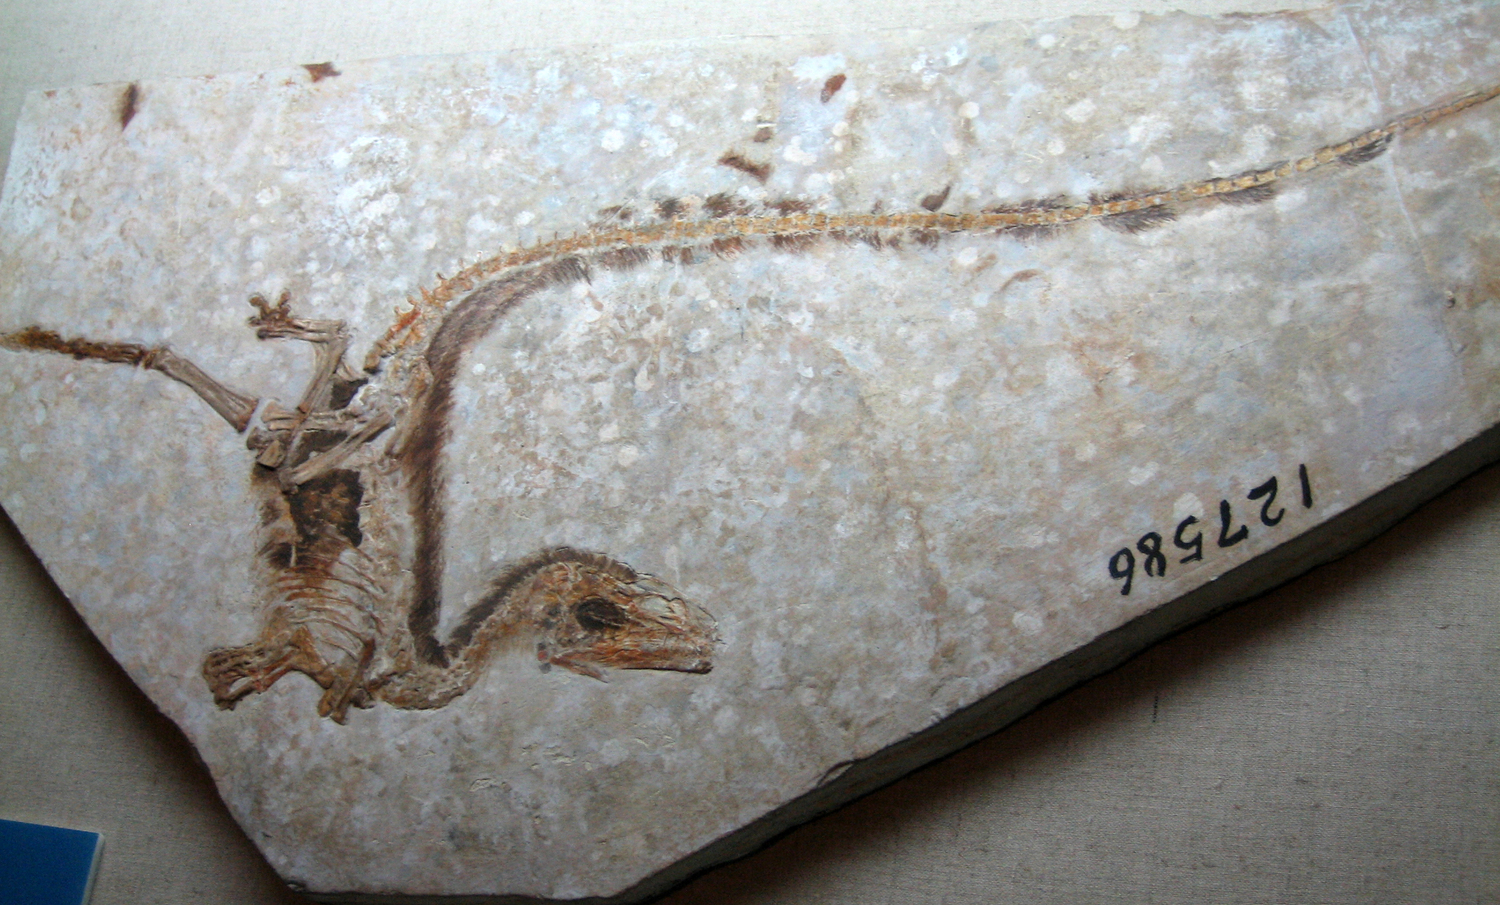 Sinosauropteryx type specimen with filament impressions, Inner Mongolia Museum